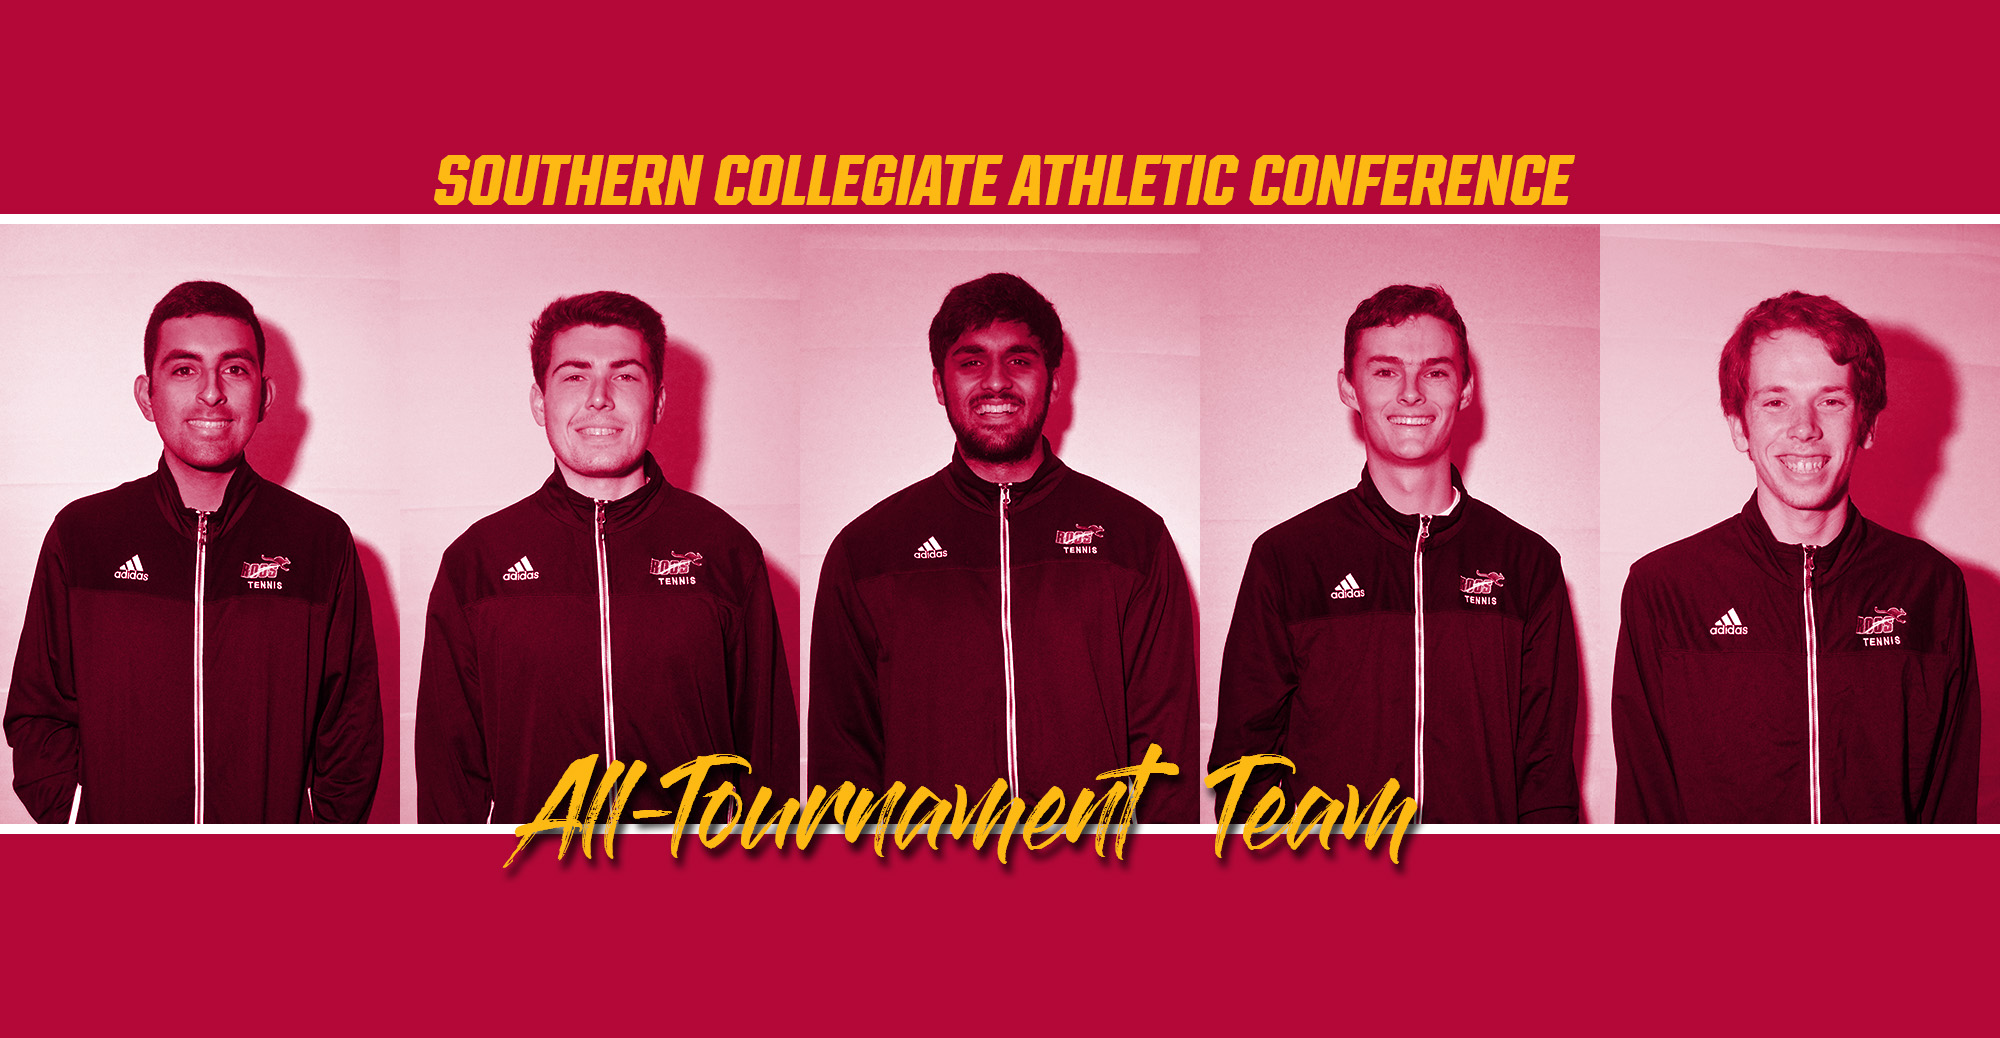 2018 SCAC Men's All-Tournament Team Includes 5 Kangaroos